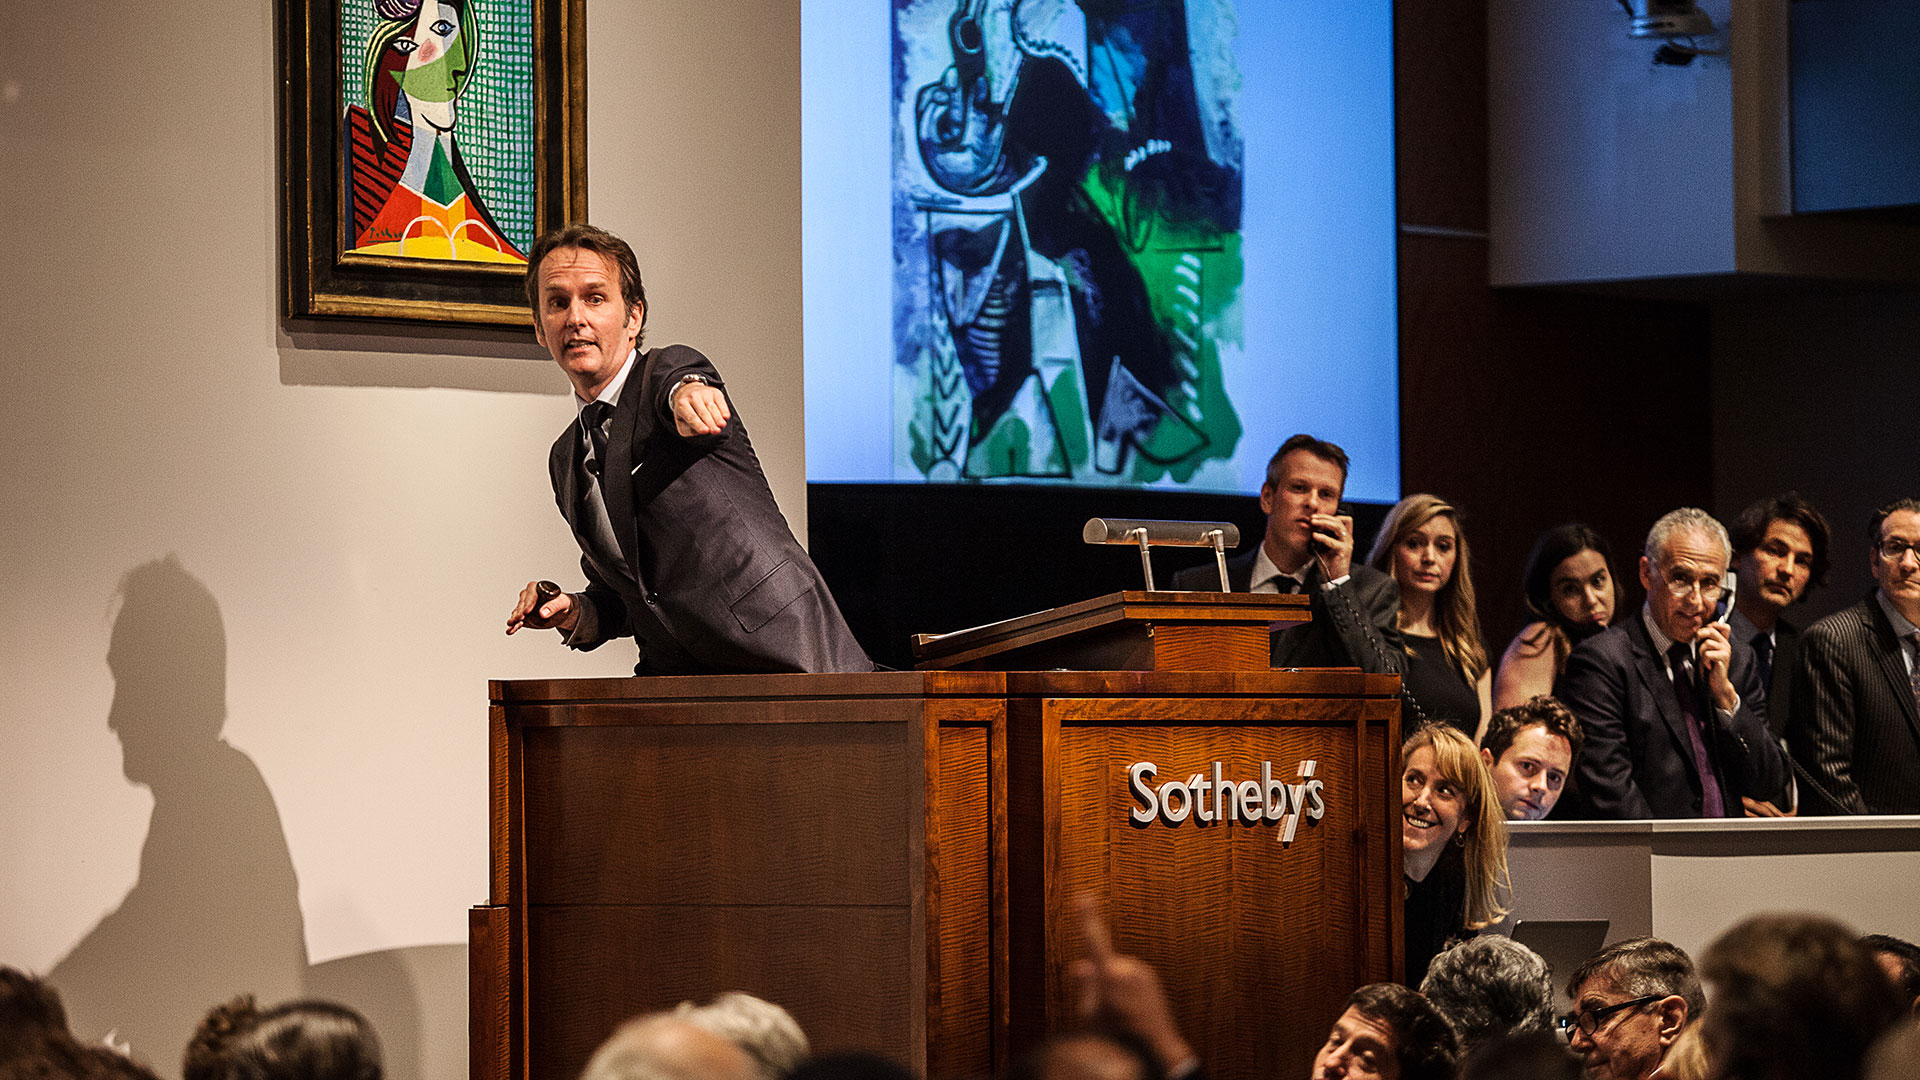 sothebys christies auction house scandal - HD1920×1080